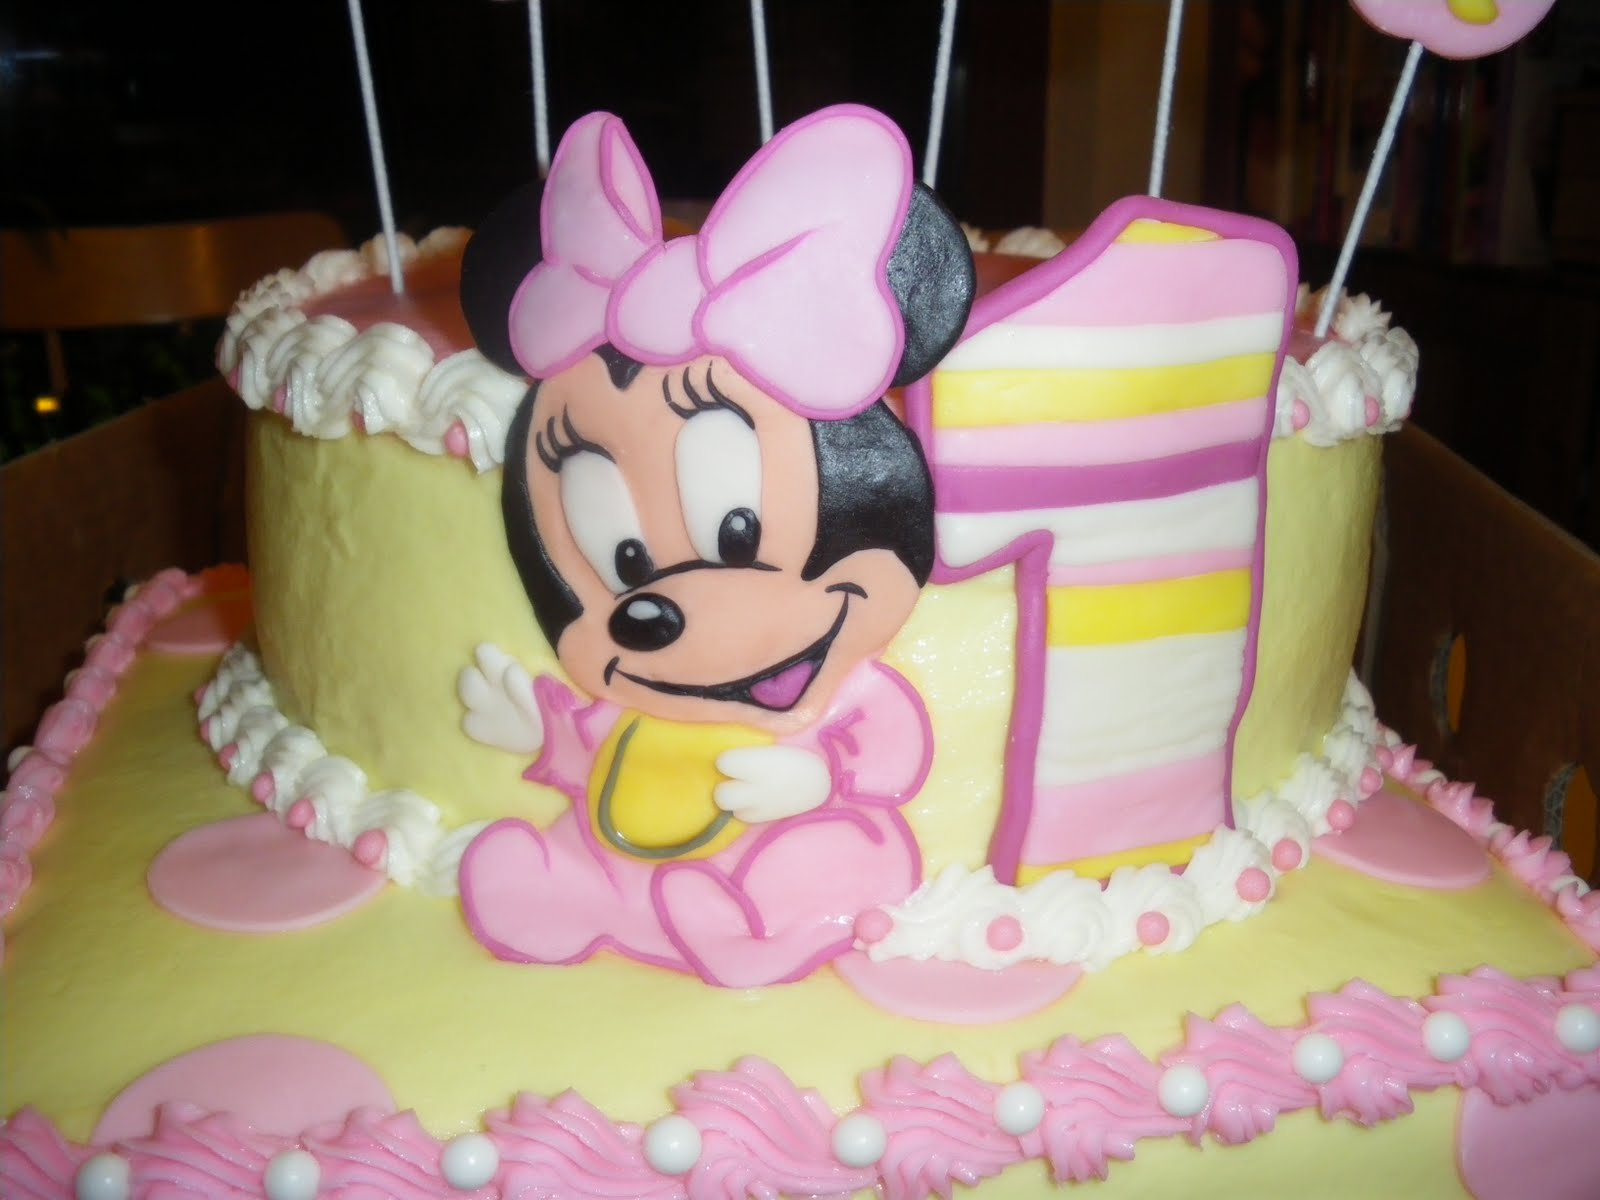 Swell 12 Baby Minnie Mouse 1St Birthday Pull Away Cakes Photo Baby Personalised Birthday Cards Veneteletsinfo